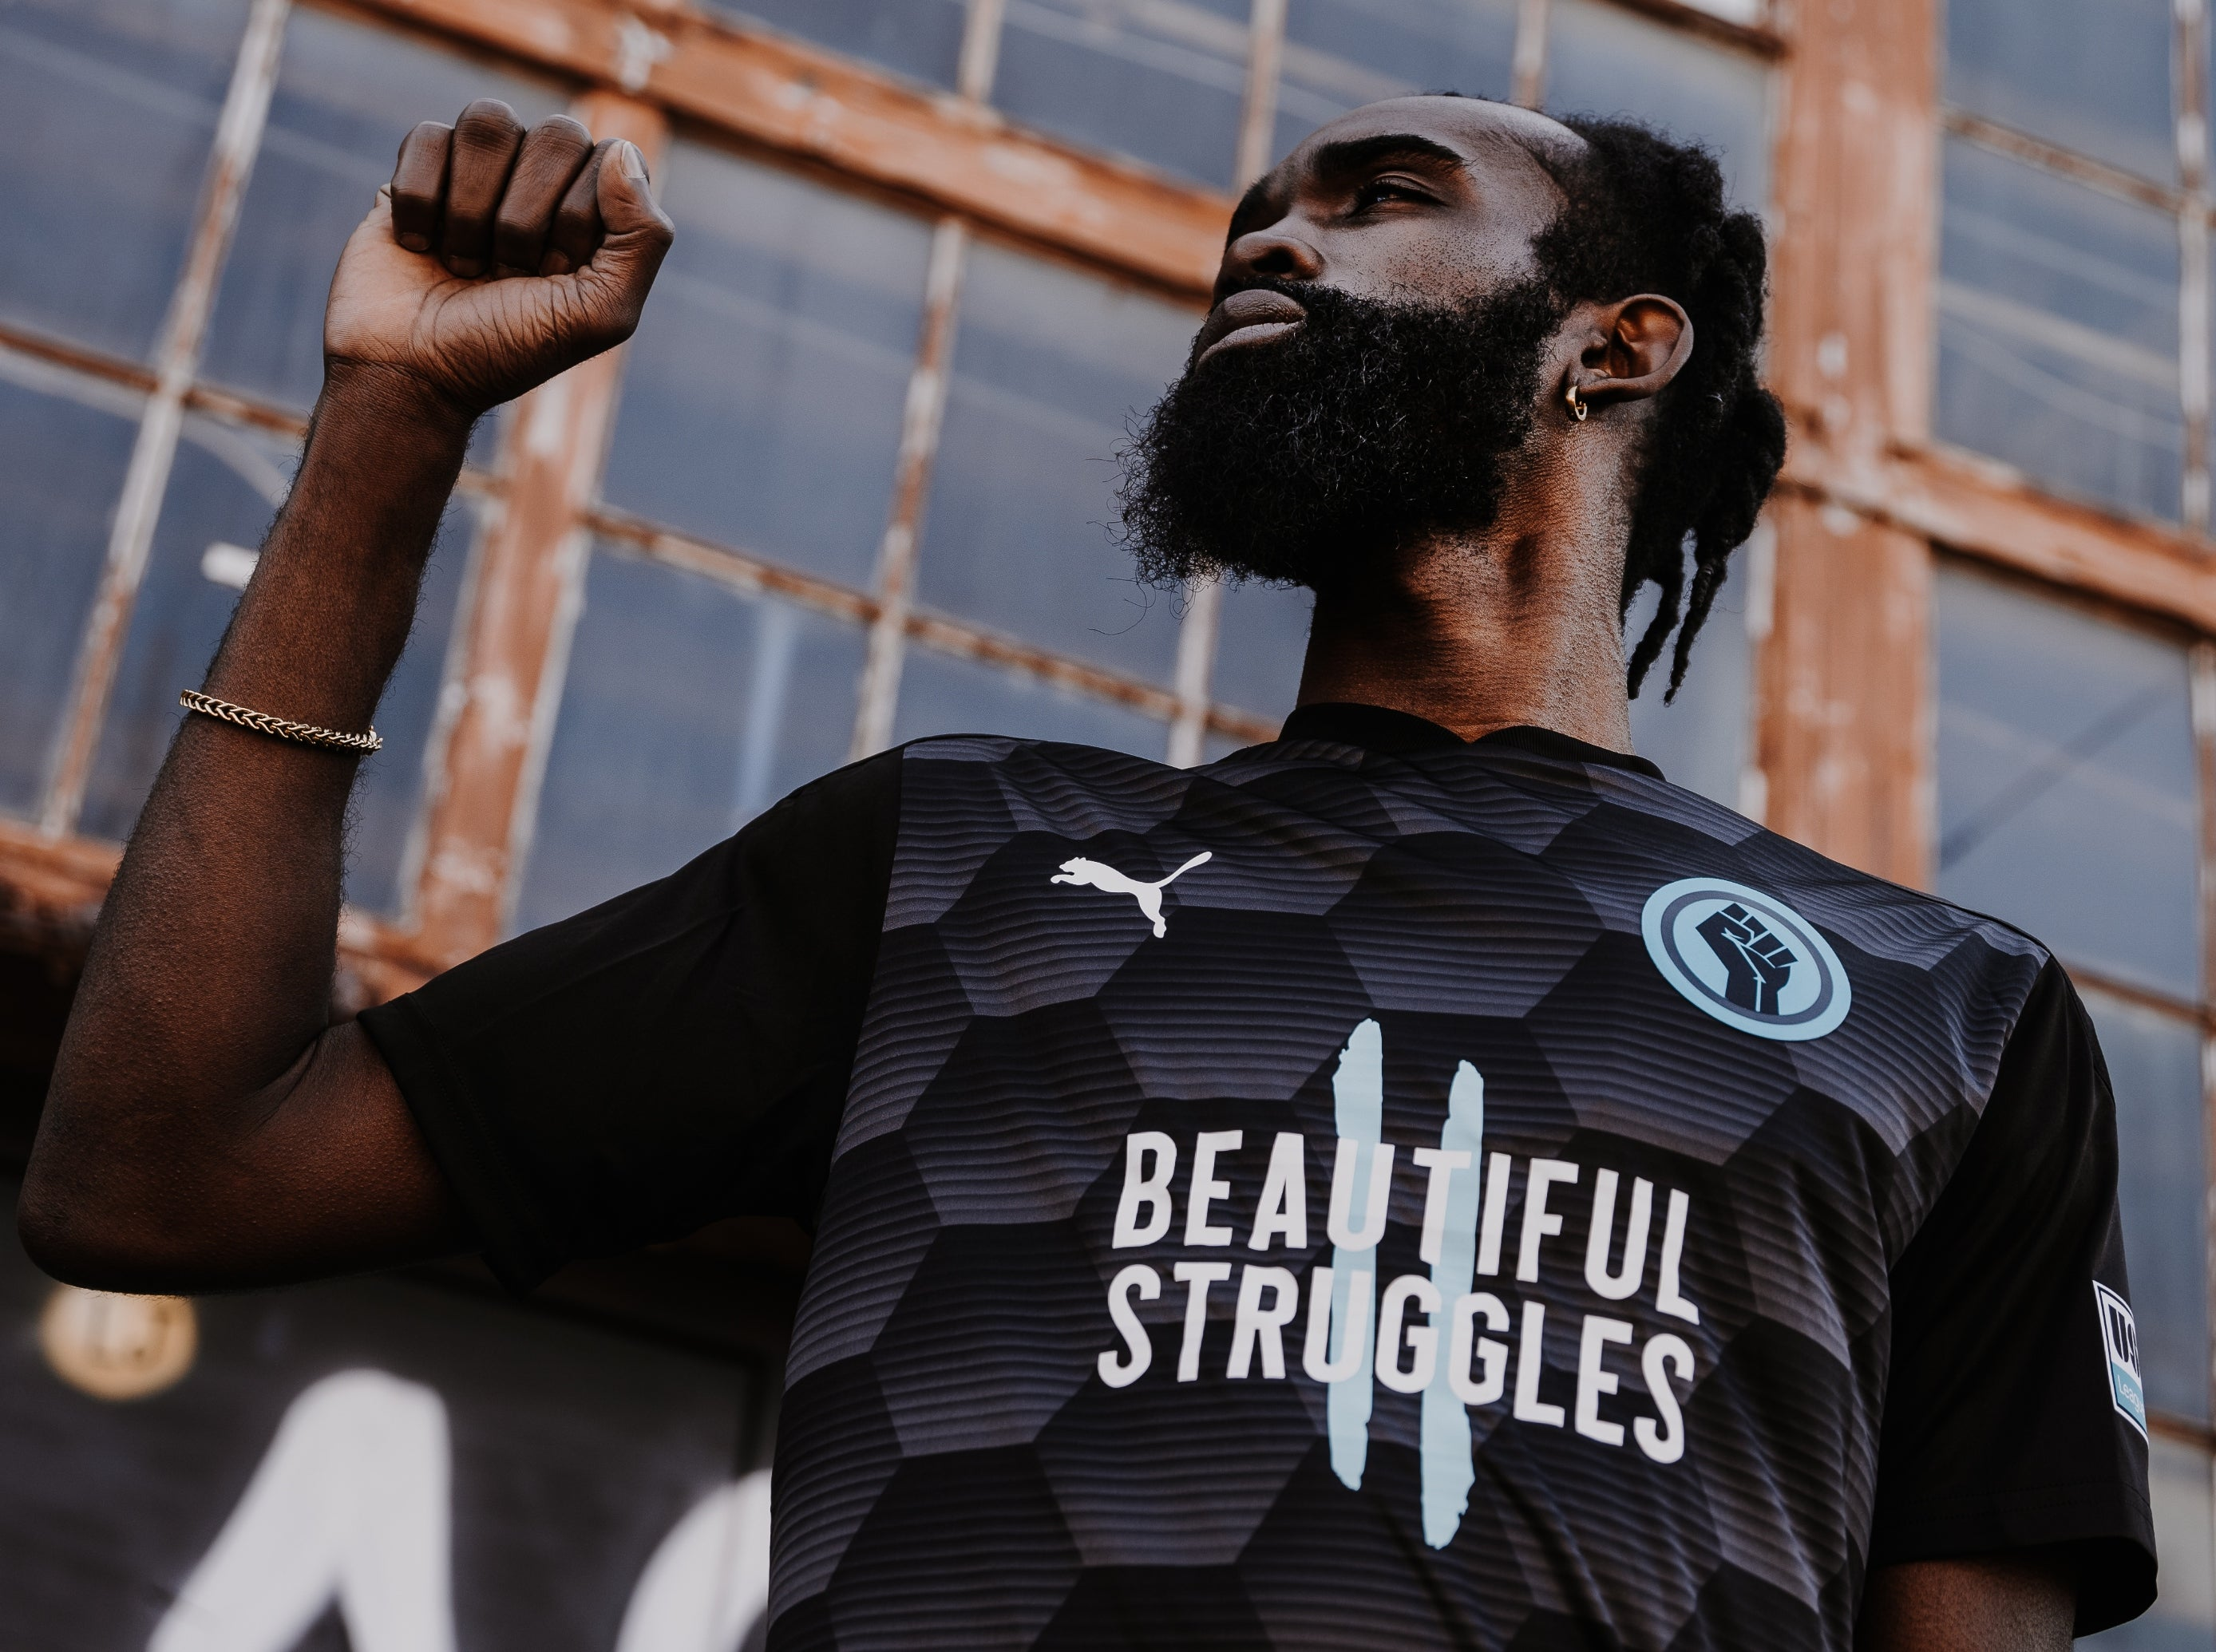 UNITED AGAINST RACISM x USL LEAGUE ONE JERSEY